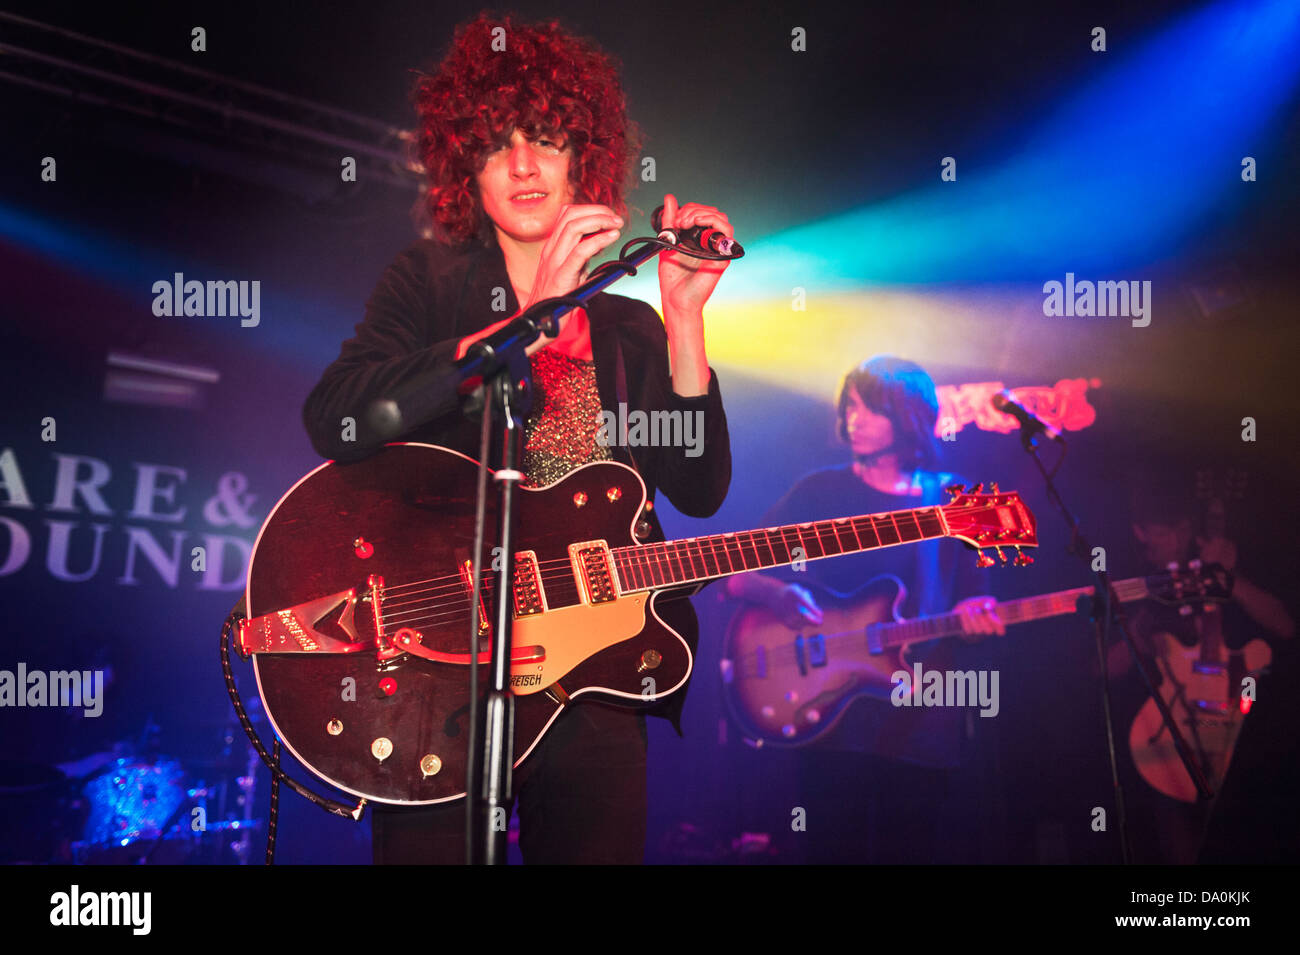 Music Hare Stock Photos & Music Hare Stock Images - Alamy